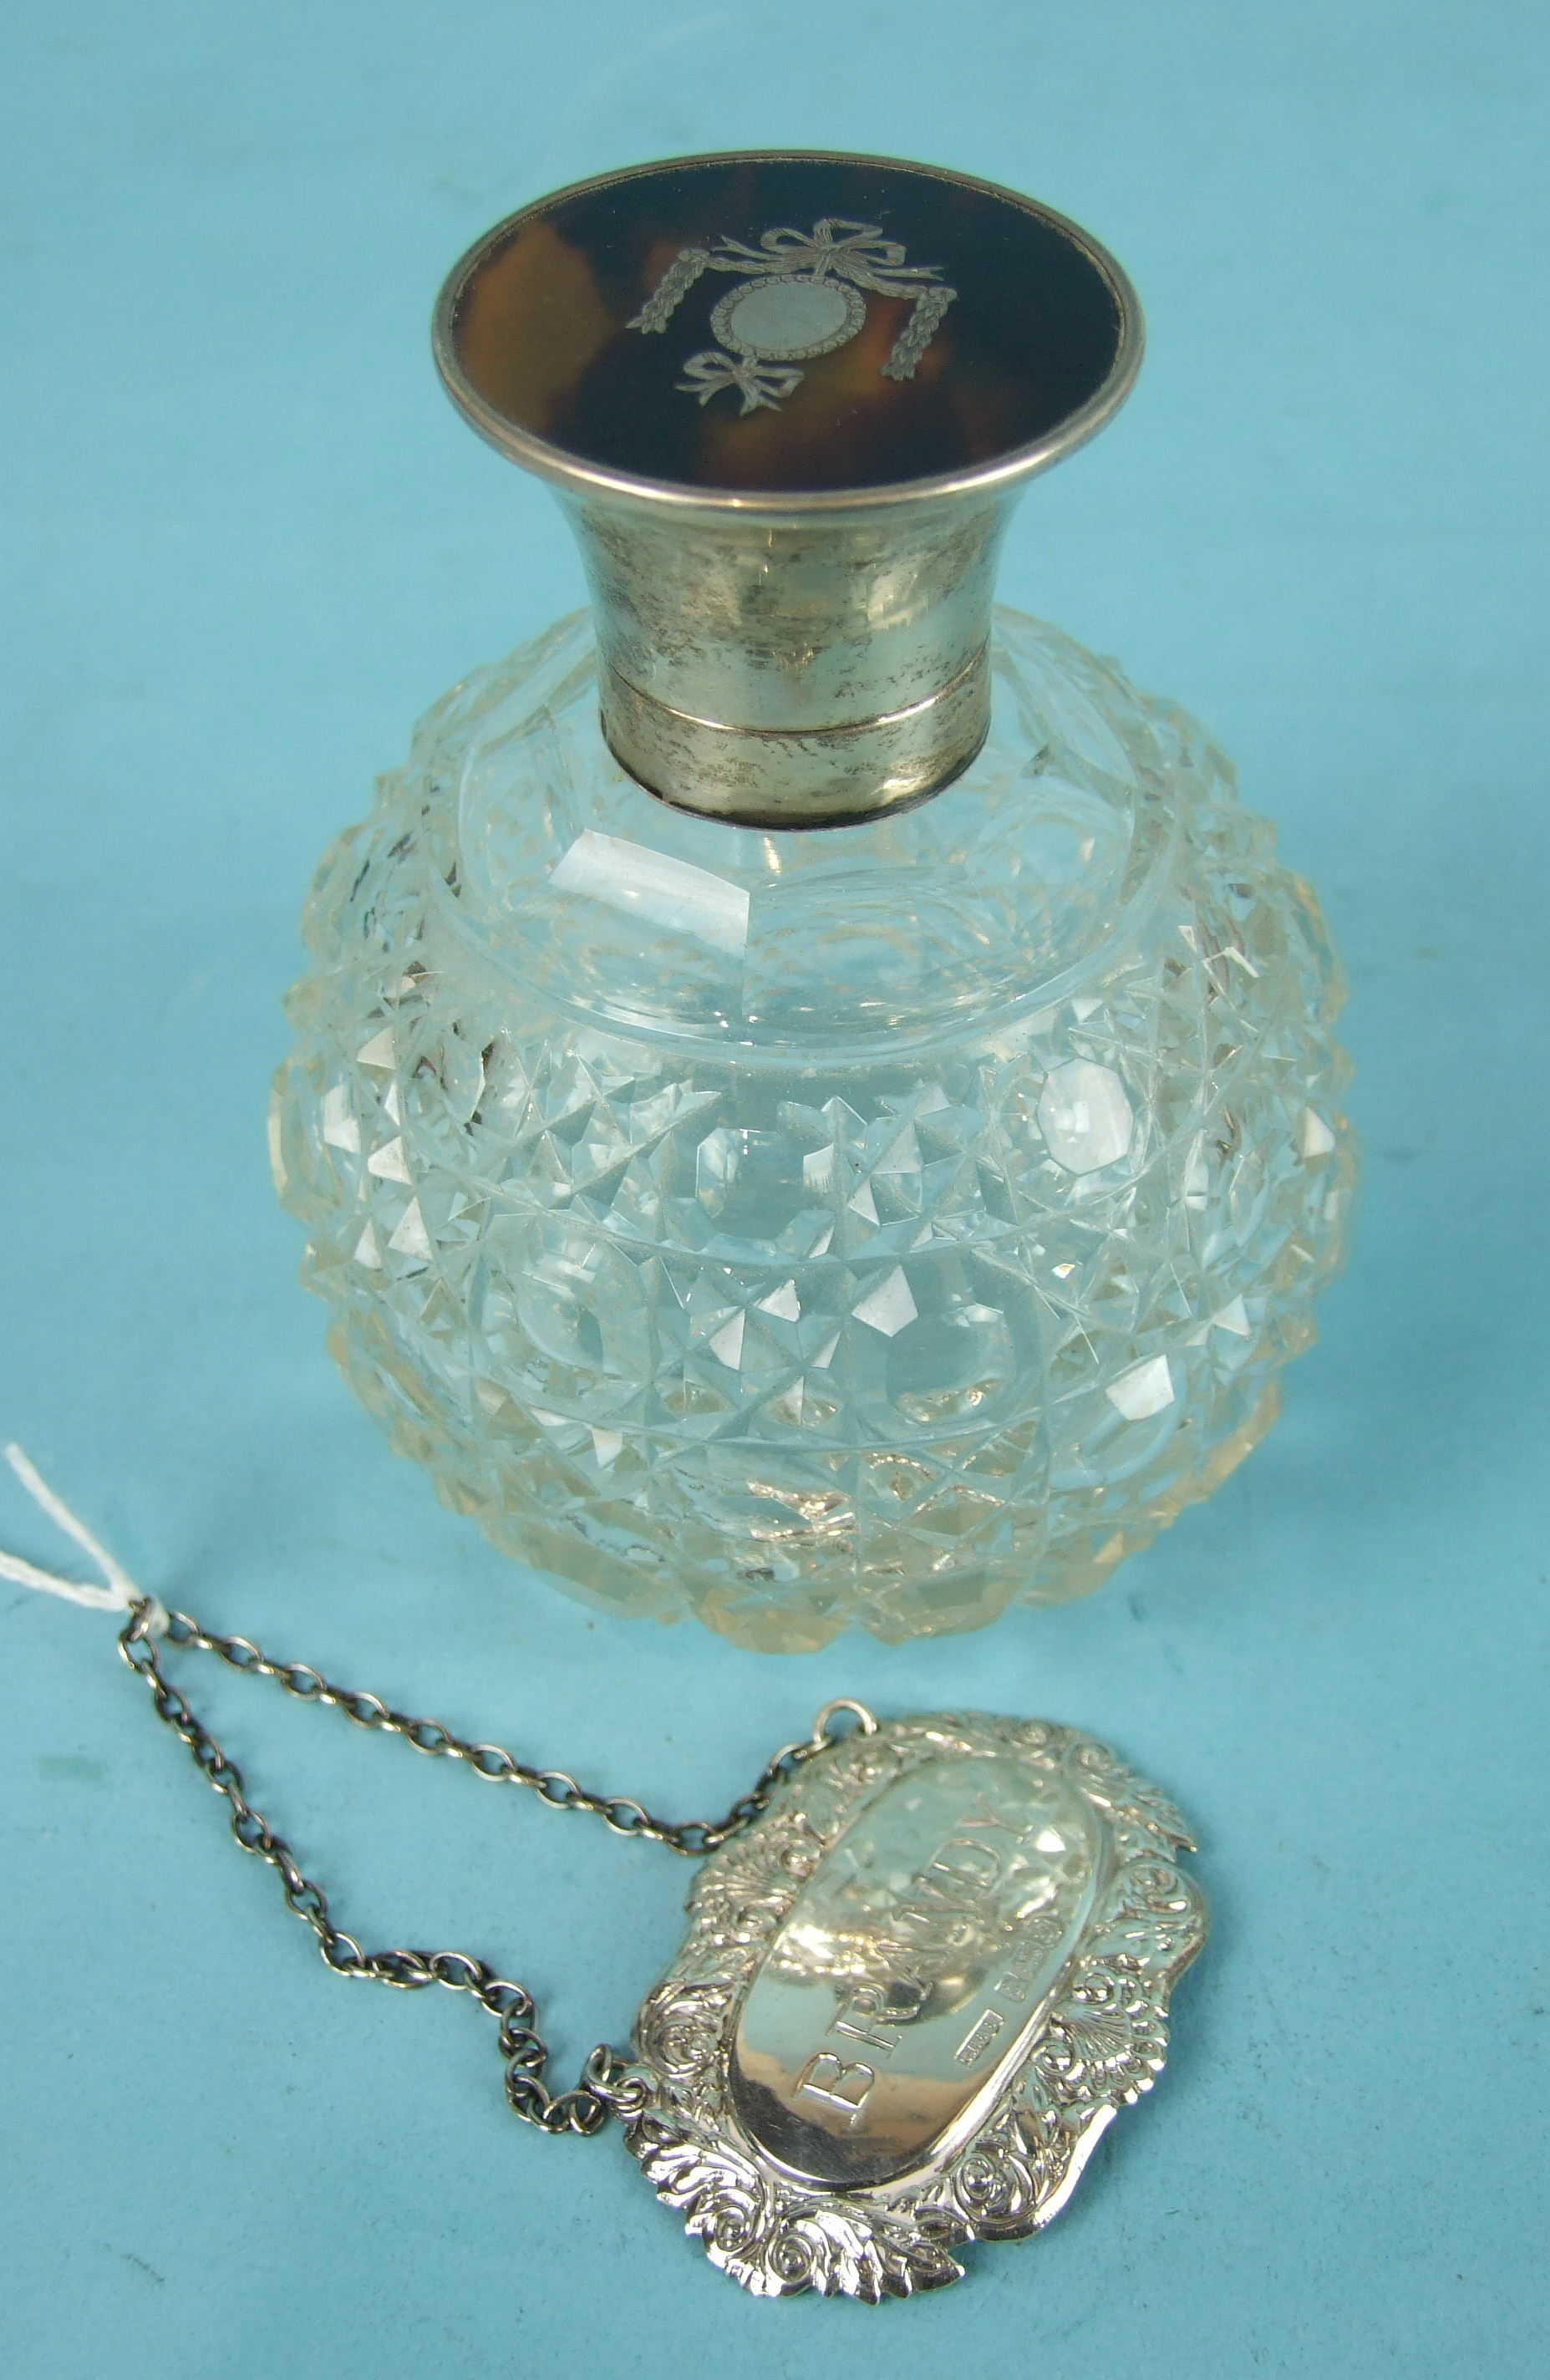 Lot 517 - An early-20th century cut-glass globe shape scent bottle with silver and tortoiseshell lid, 11.5cm